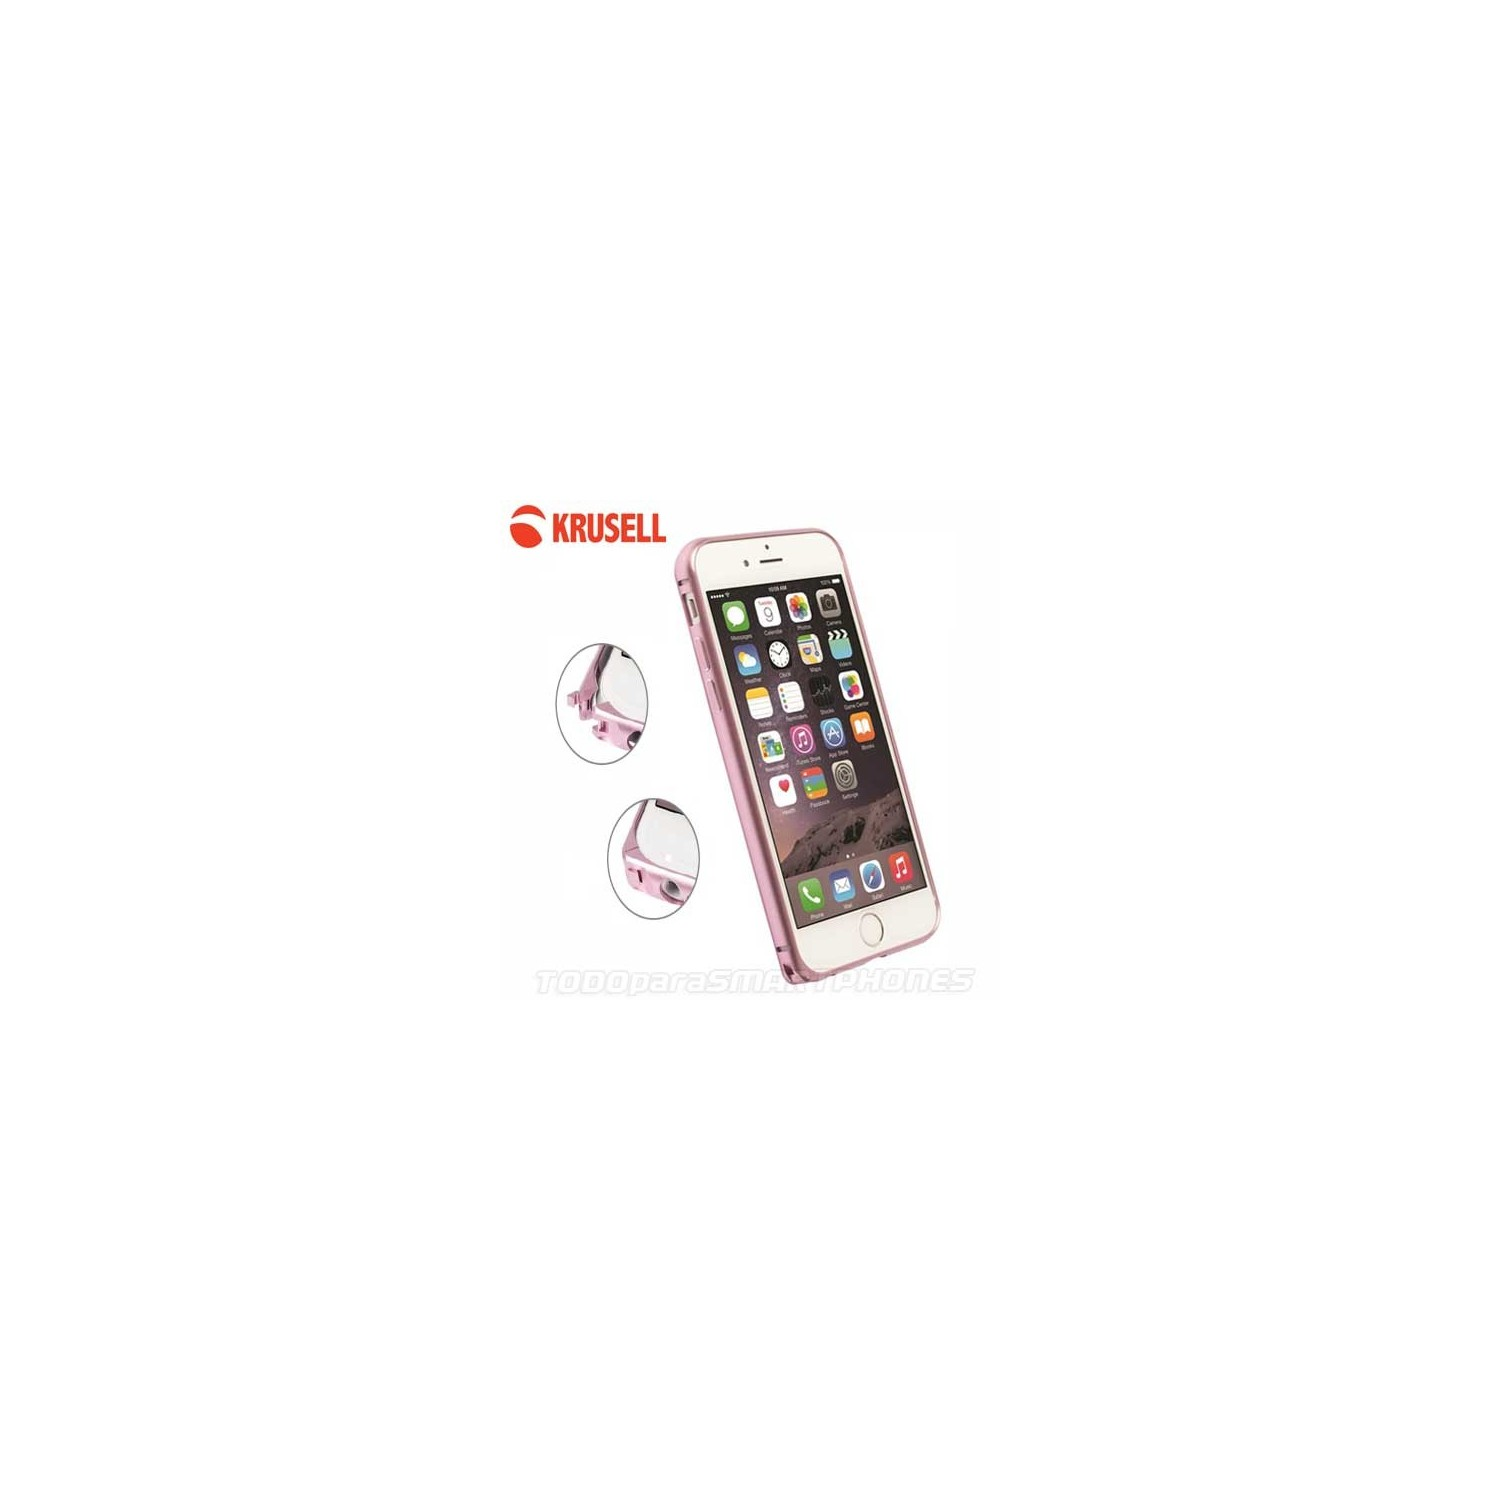 Case - Krusell AluBumper for iPhone 6/6s Pink